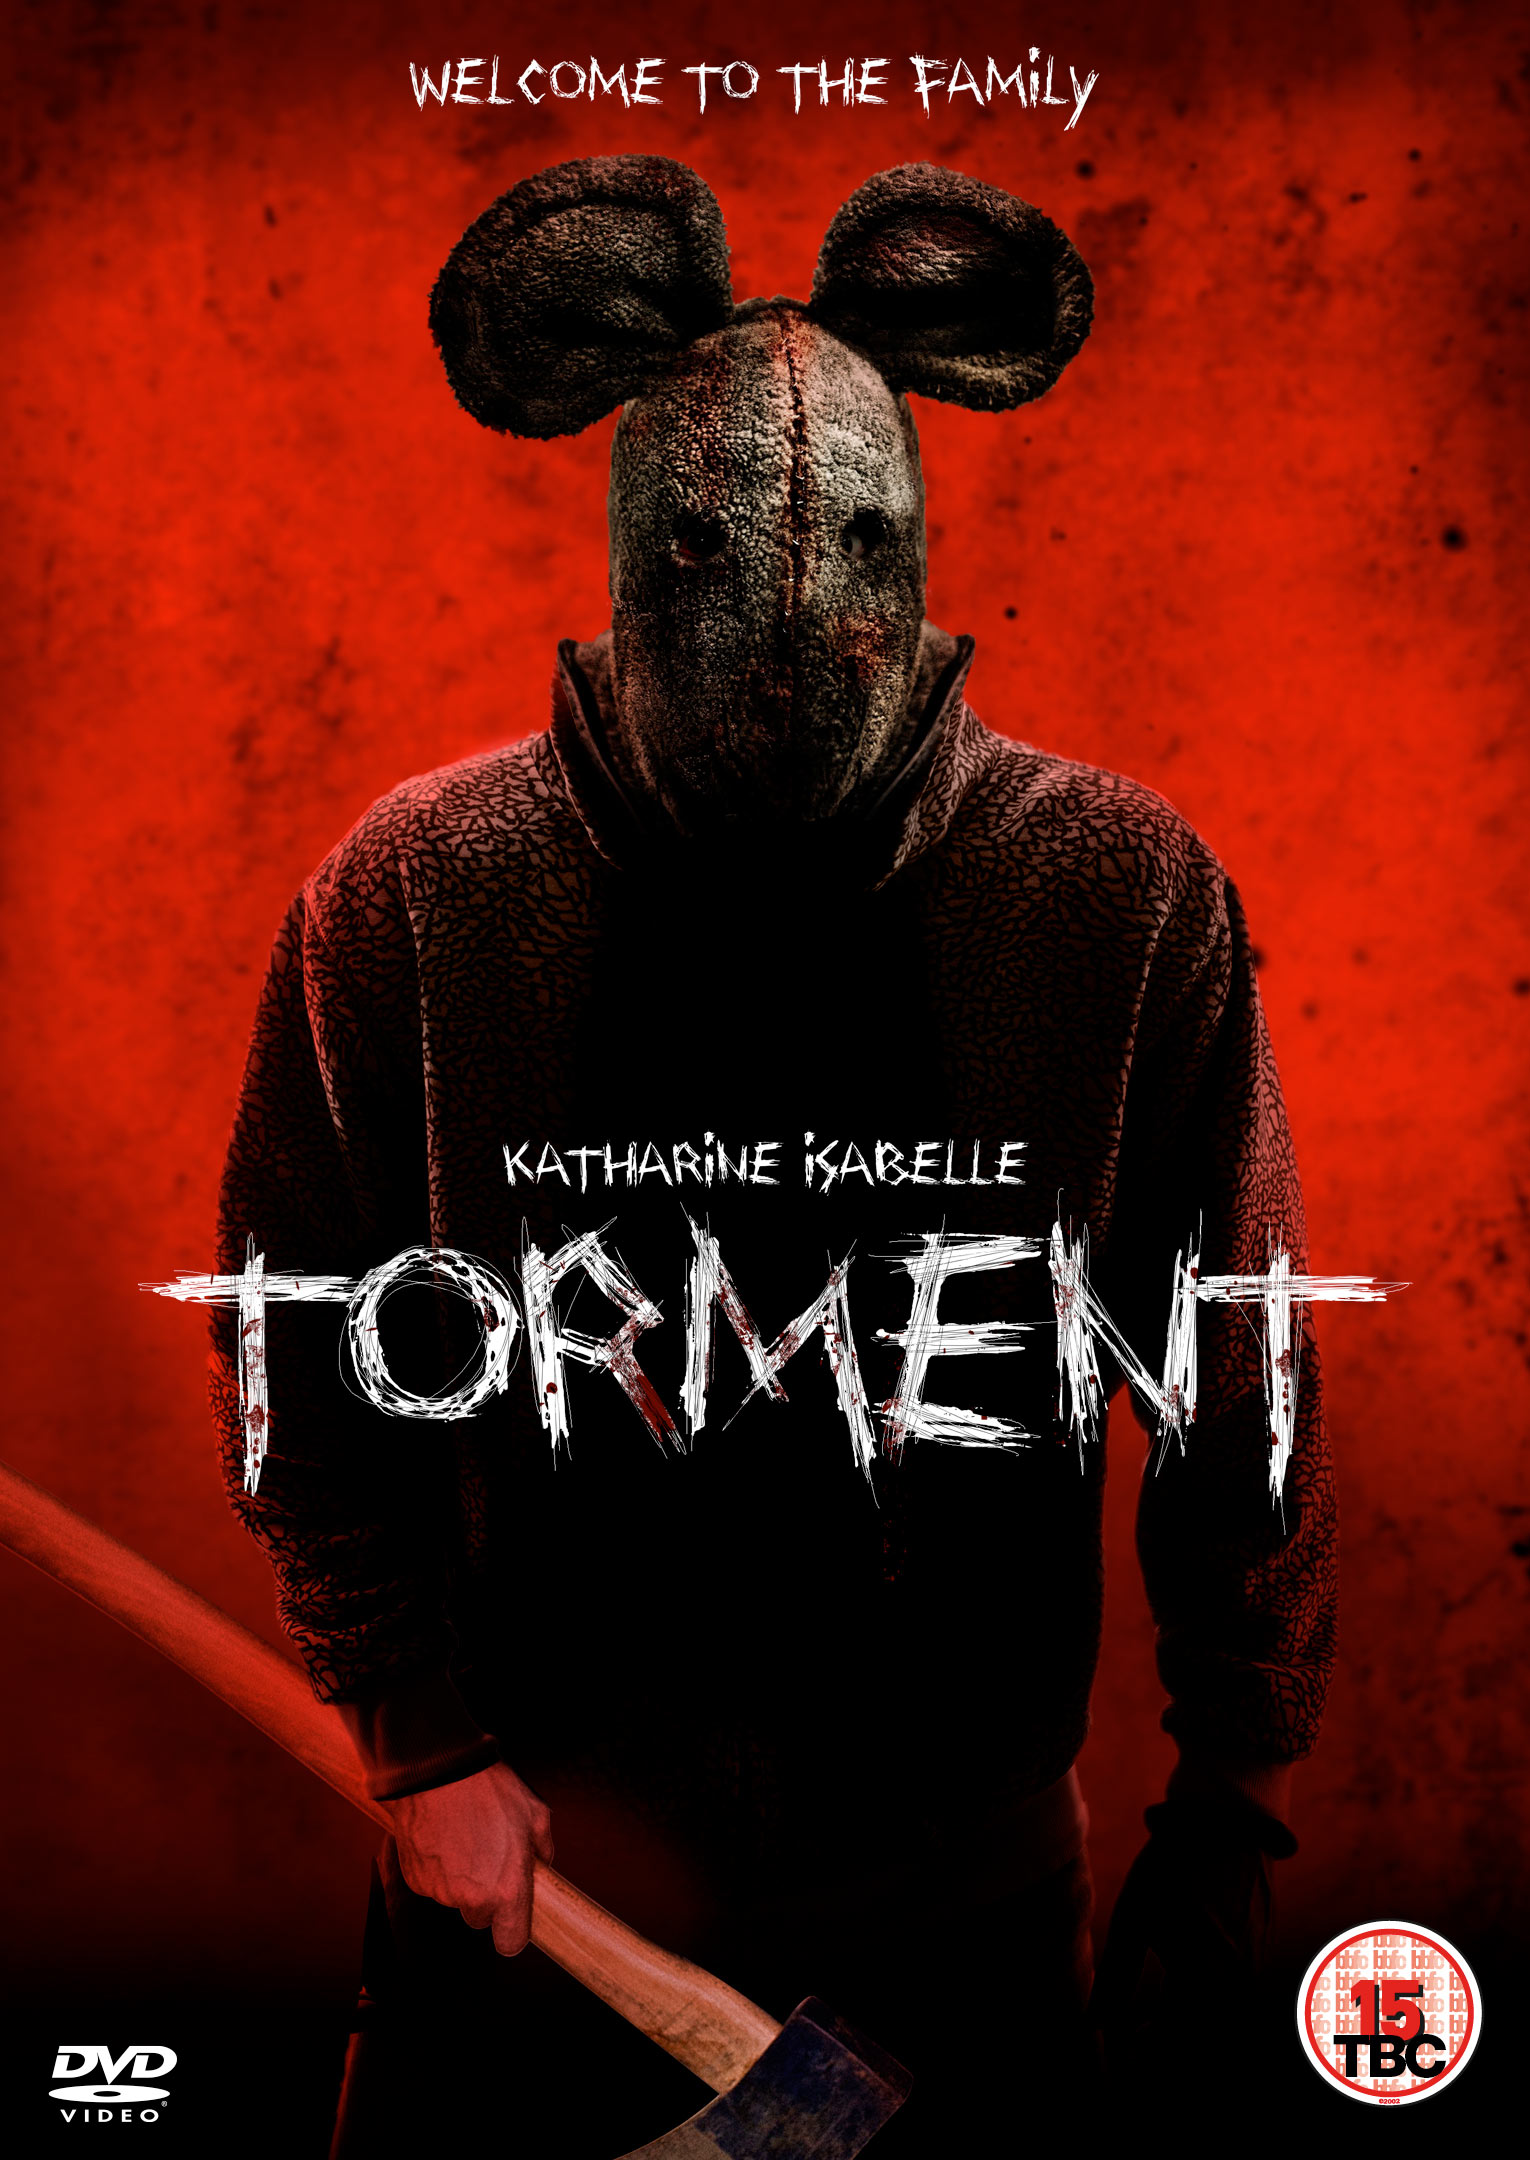 torment - UK Readers - Prepare for Torment in January